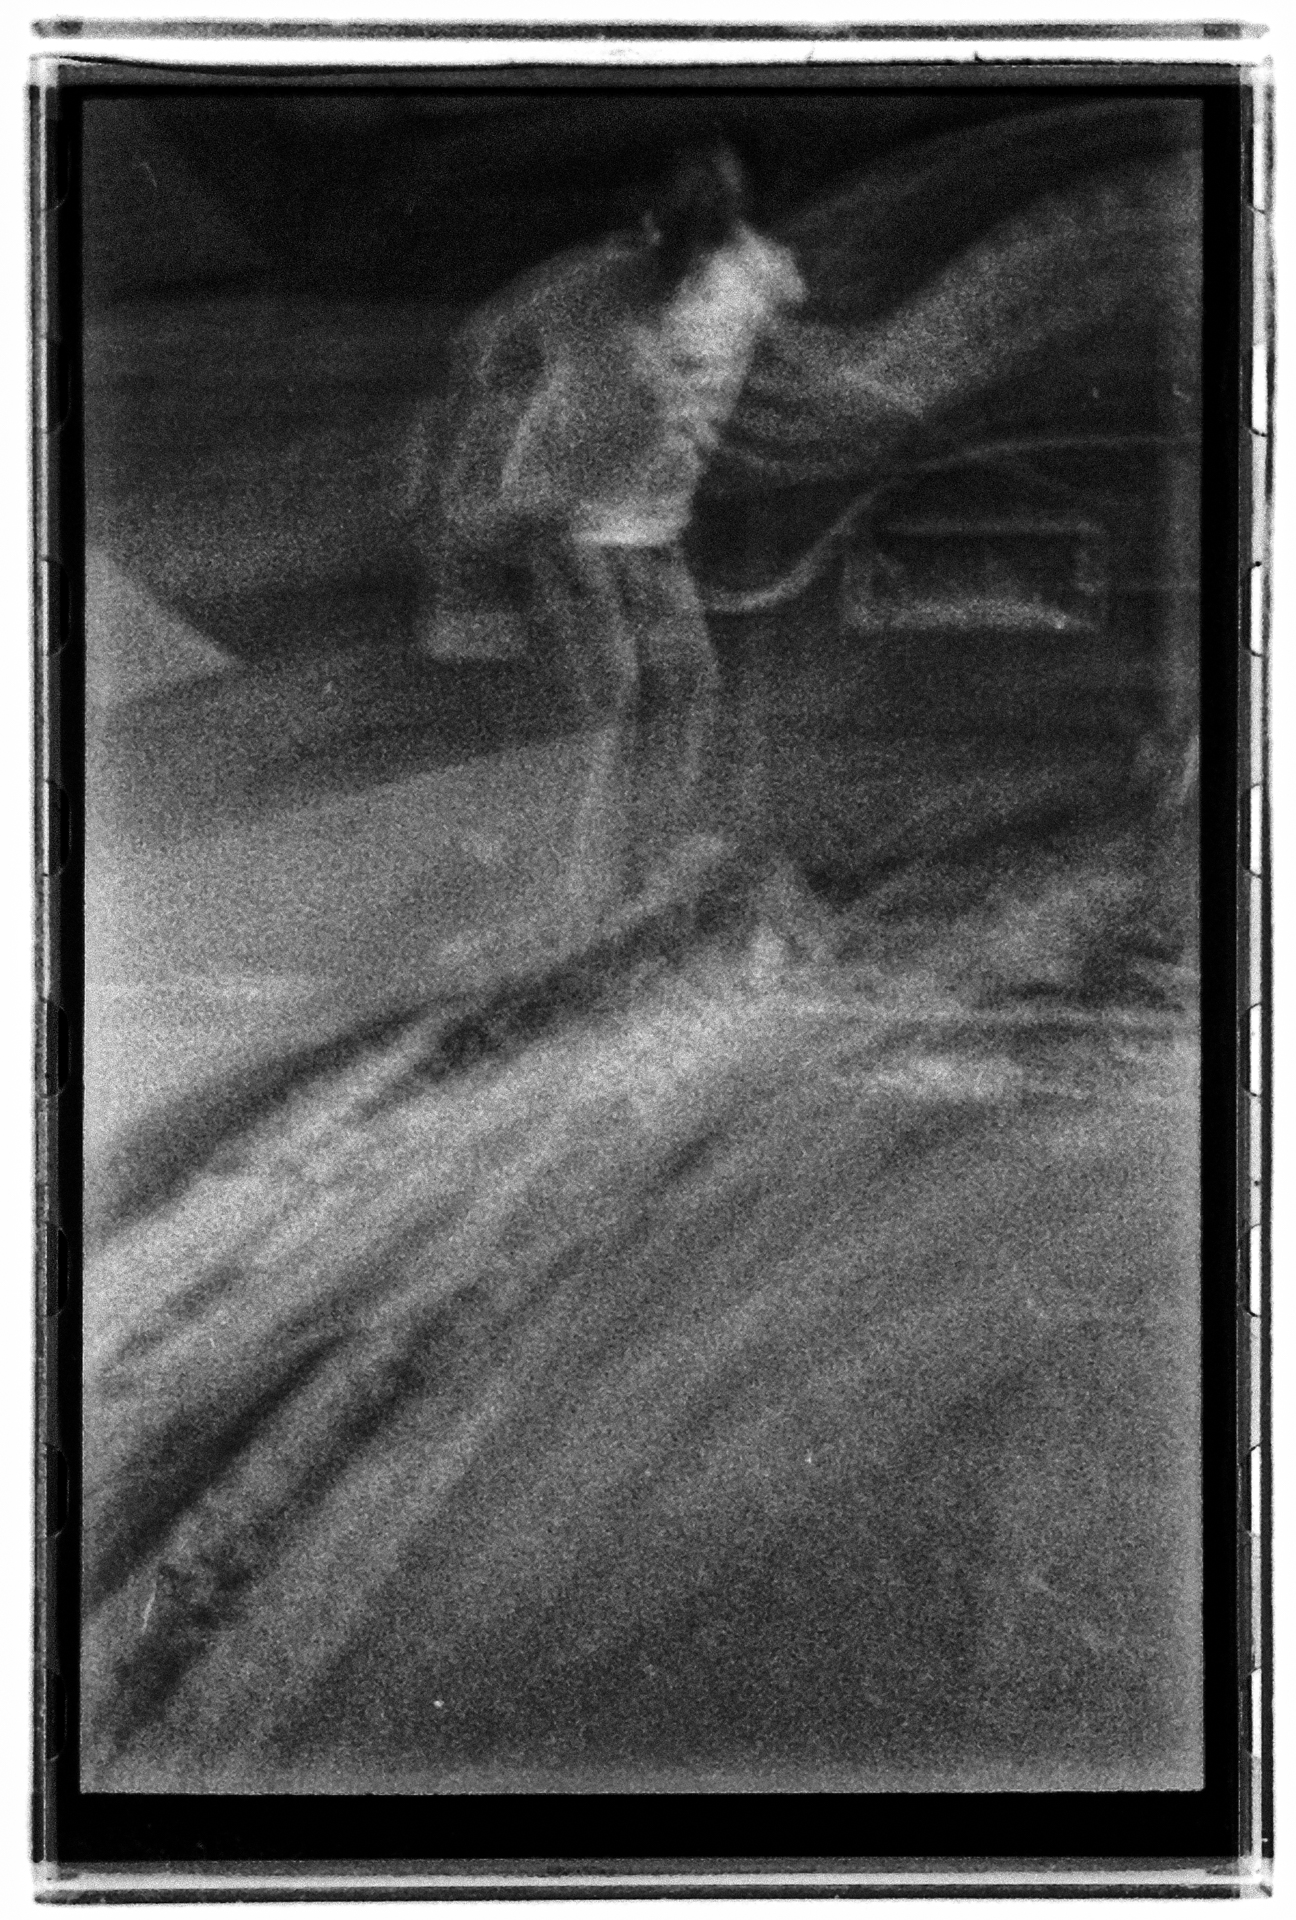 Long Exposure Skate Photography (1 of 1)